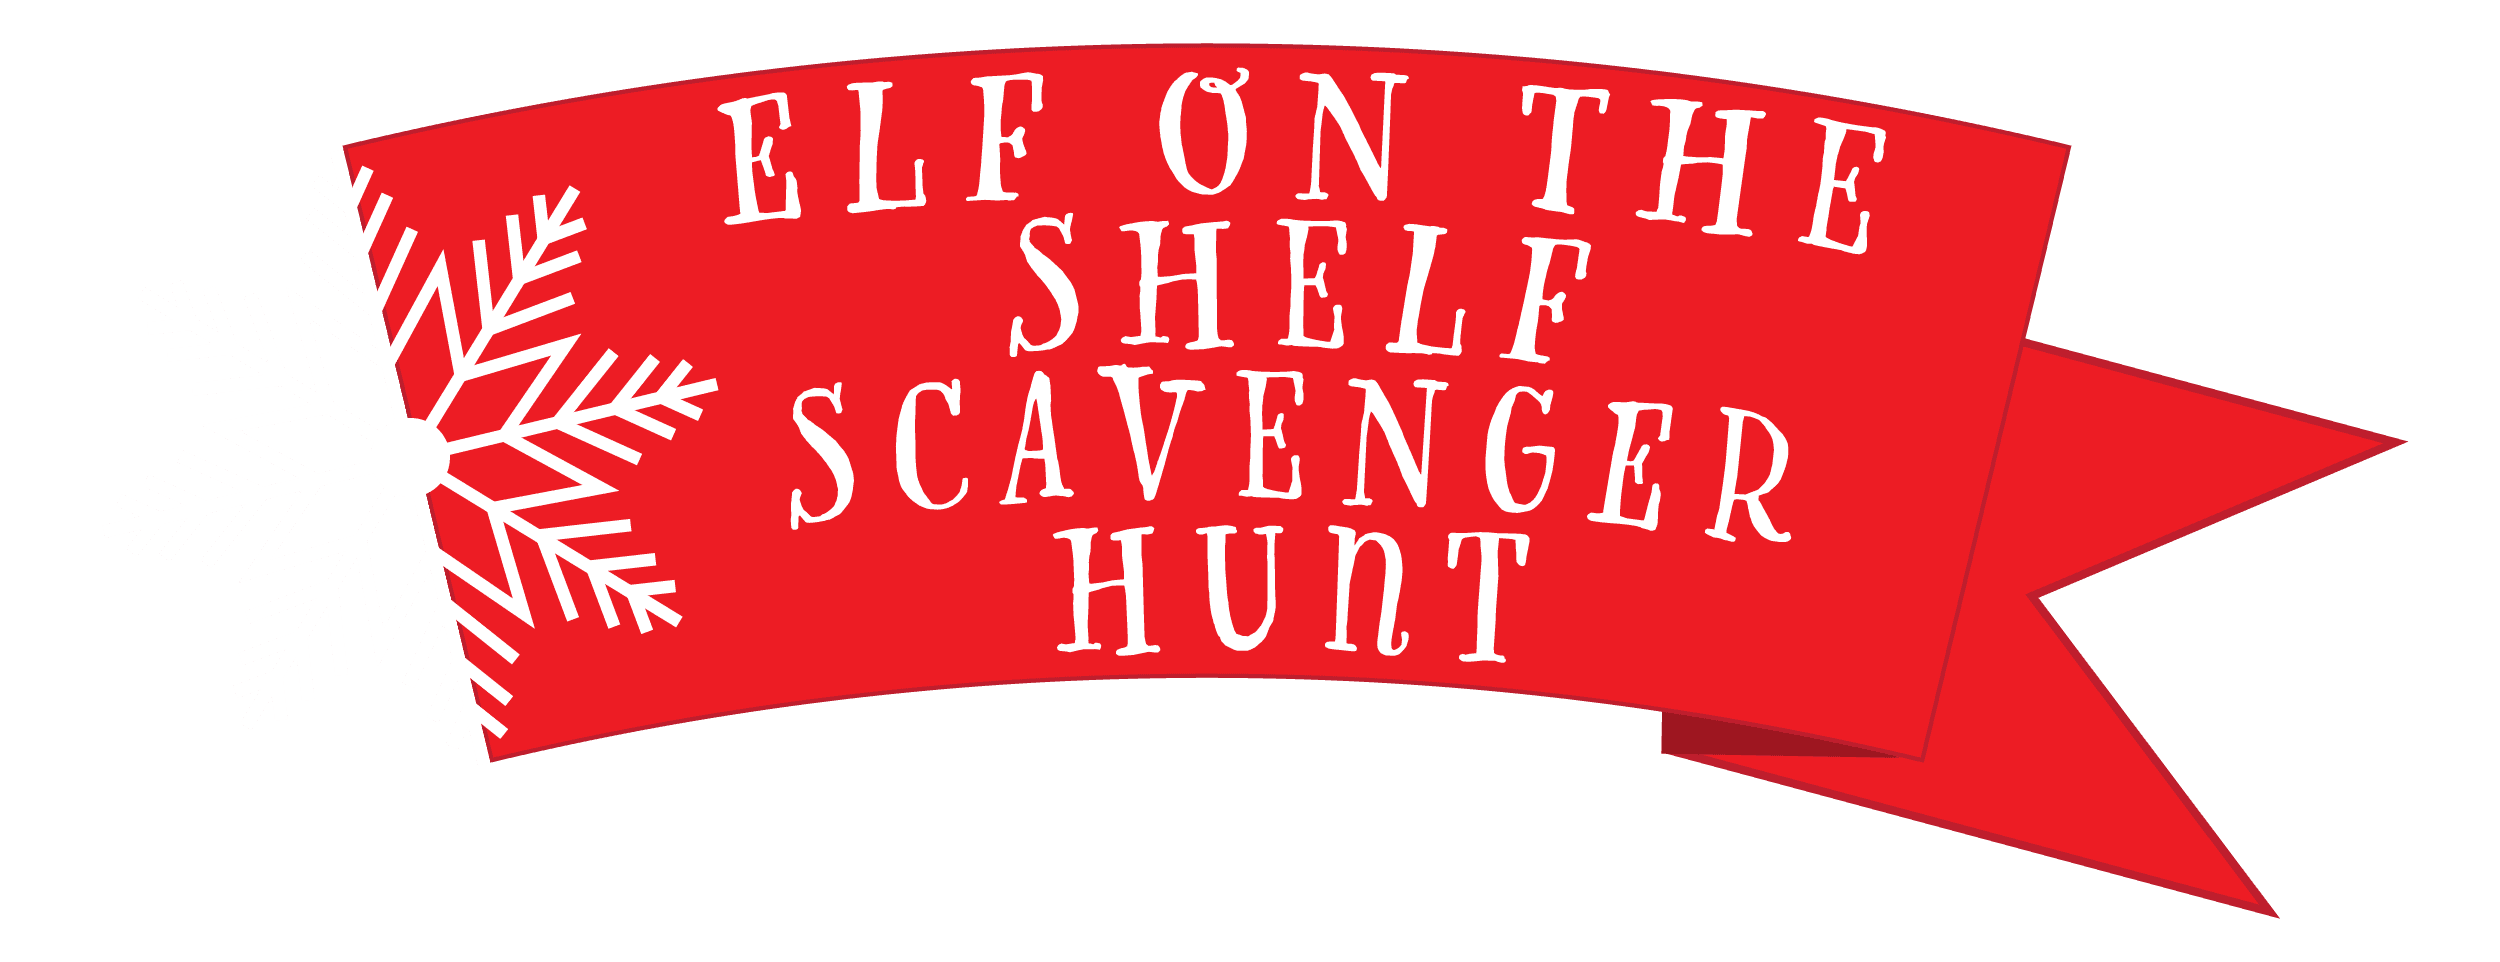 Elf on the Shelf Scavenger Hunt Logo